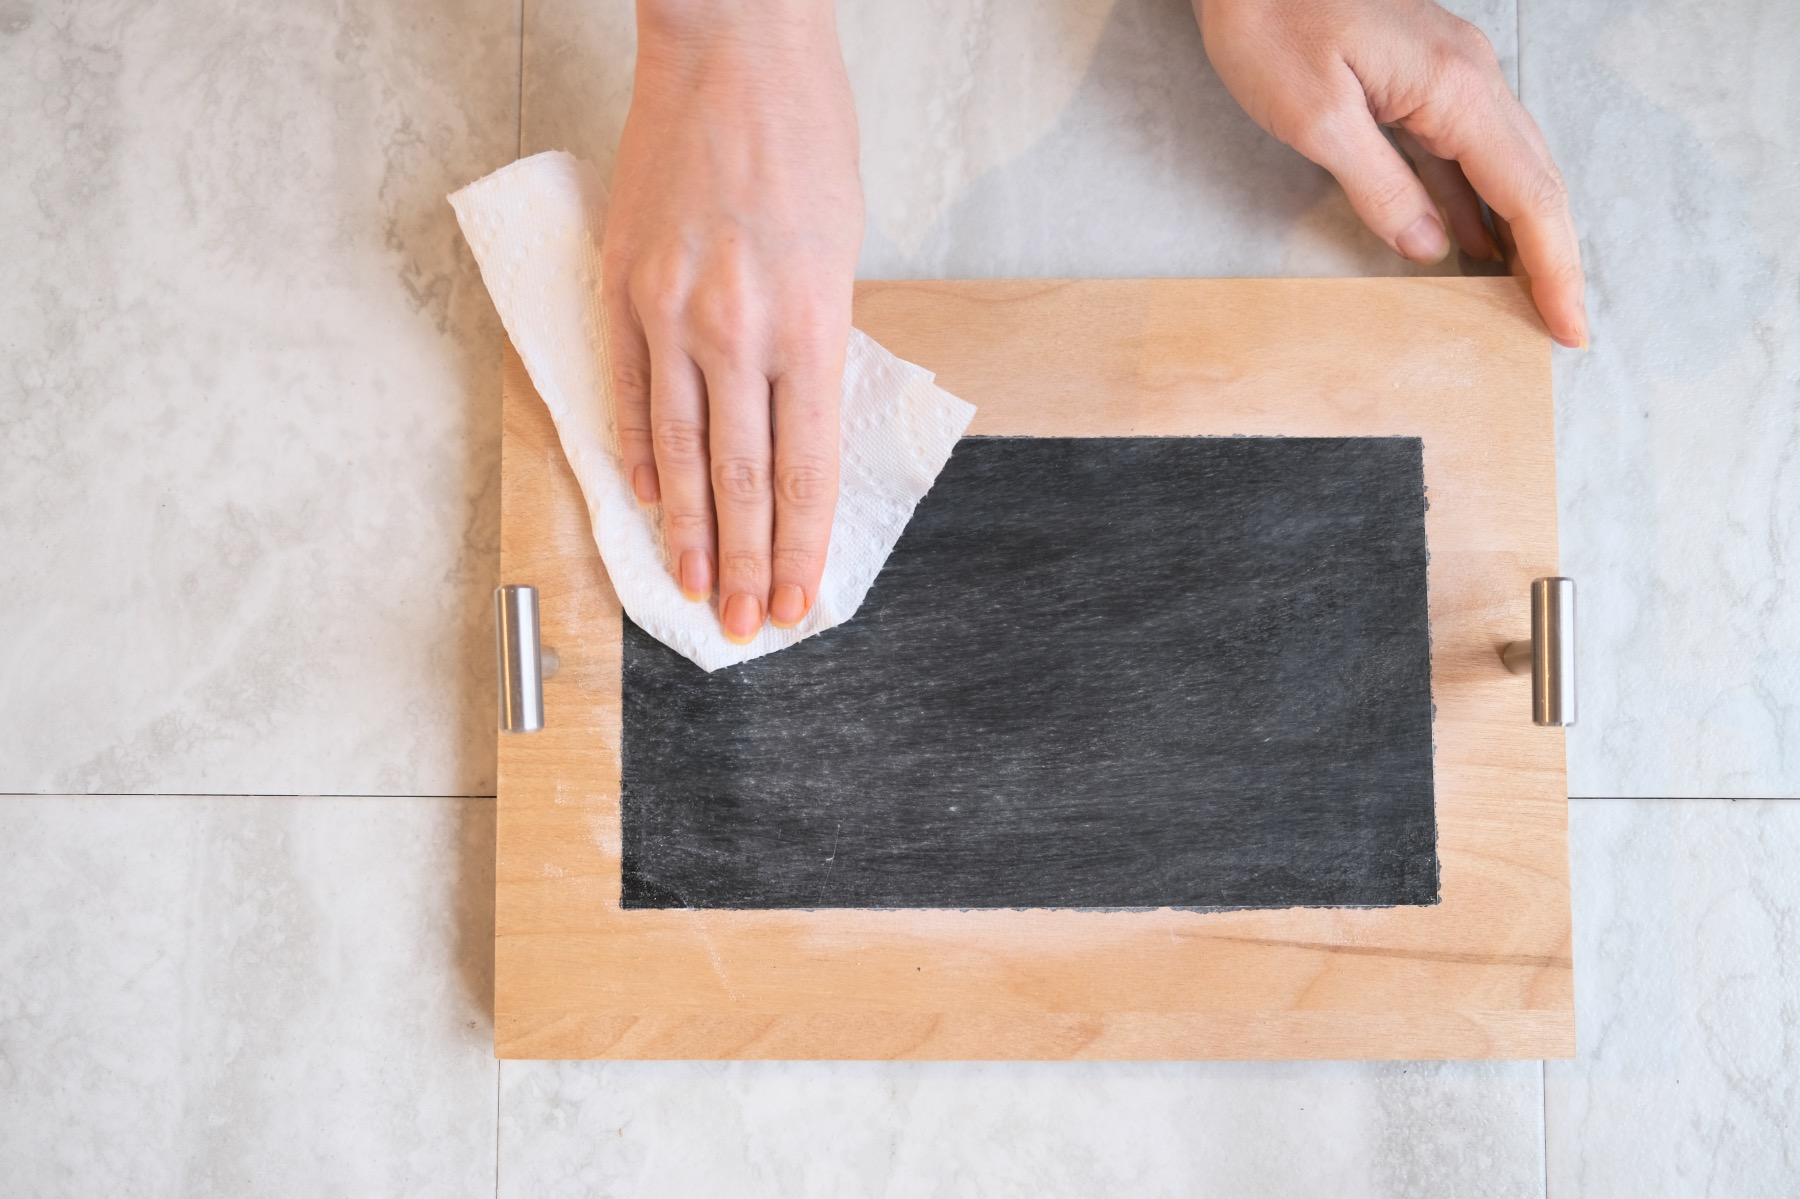 wipe off the dry chalk to make a chalkboard tray